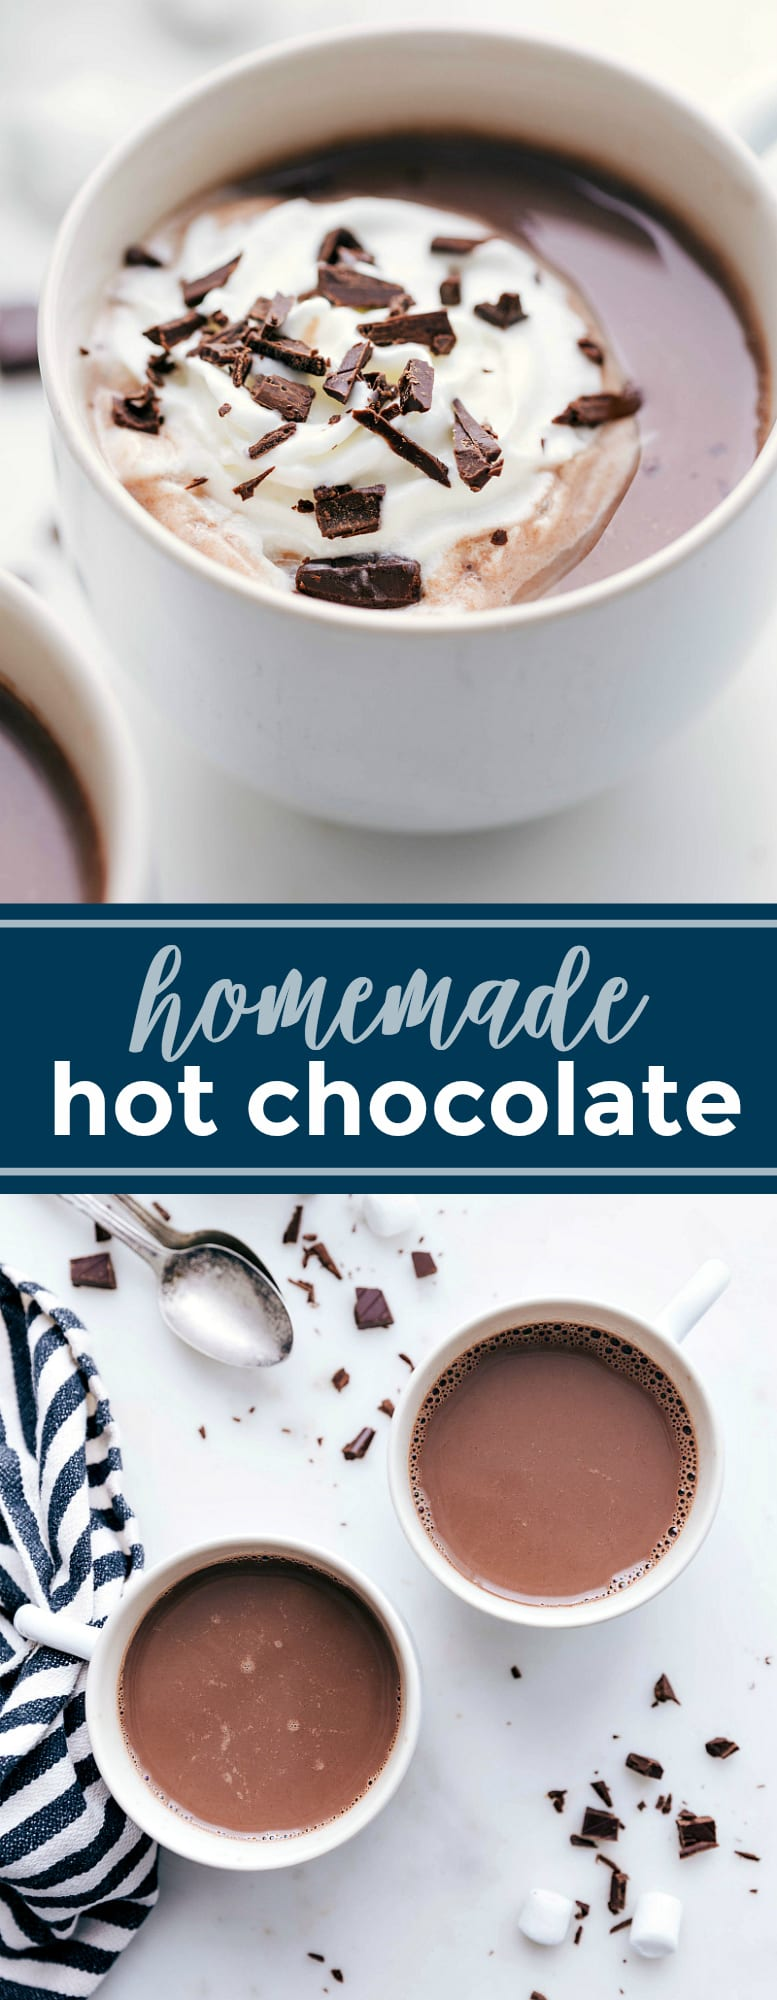 Creamy, dreamy hot chocolate -- you'll never go back to buying mixes or packets after trying this recipe and seeing how simple it is to make! via chelseasmessyapron.com #homemade #hot #chocolate #cocoa #hotcocoa #whipped #cream #kidfriendly #easy #quick #christmas #recipe #holiday #holidays